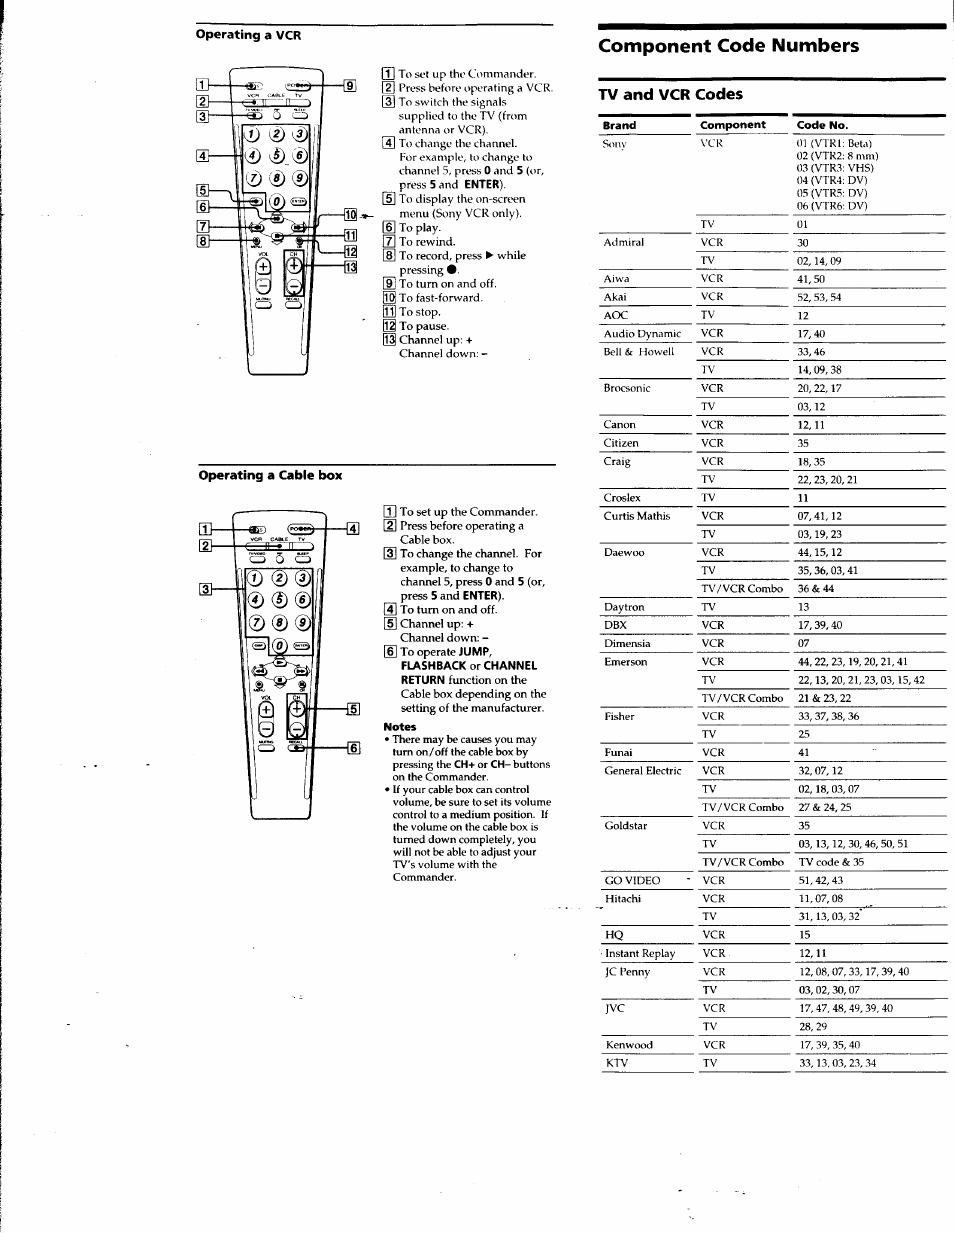 Operating a vcr, Component code numbers, Operating a cable